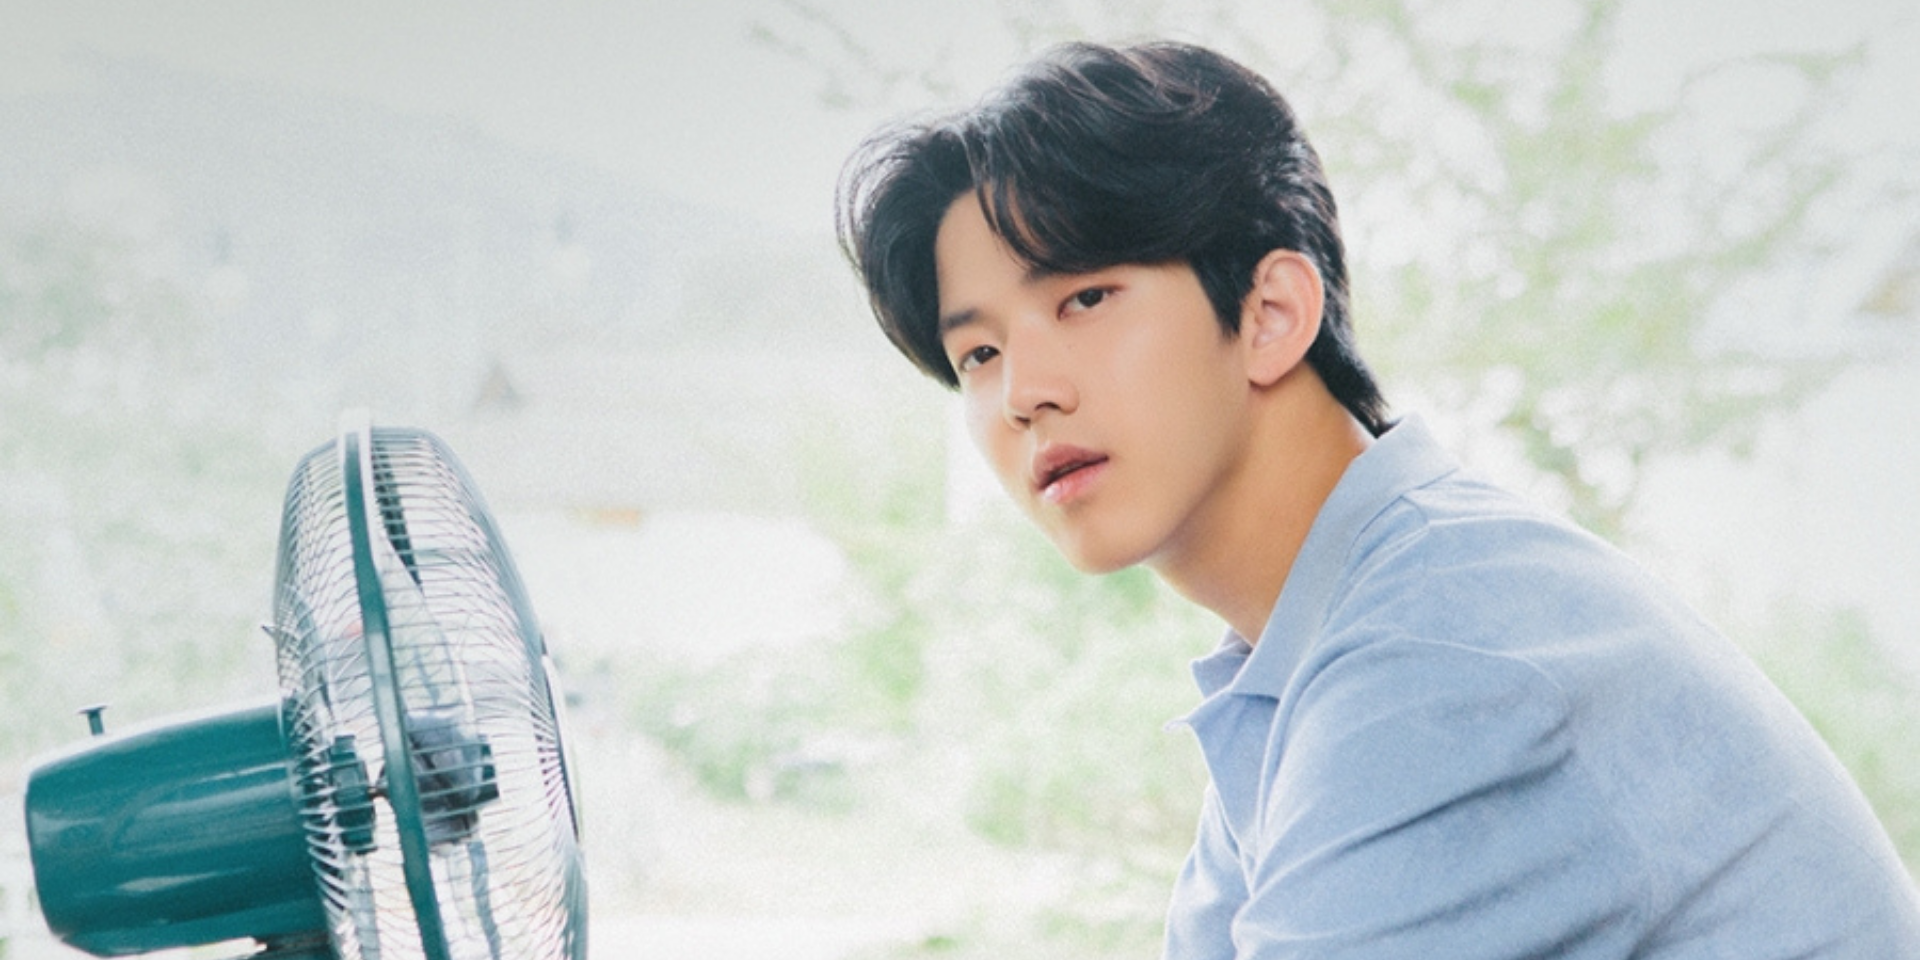 DAY6's DOWOON makes solo debut with digital single 'Out Of The Blue (문득)' featuring Song Heejin